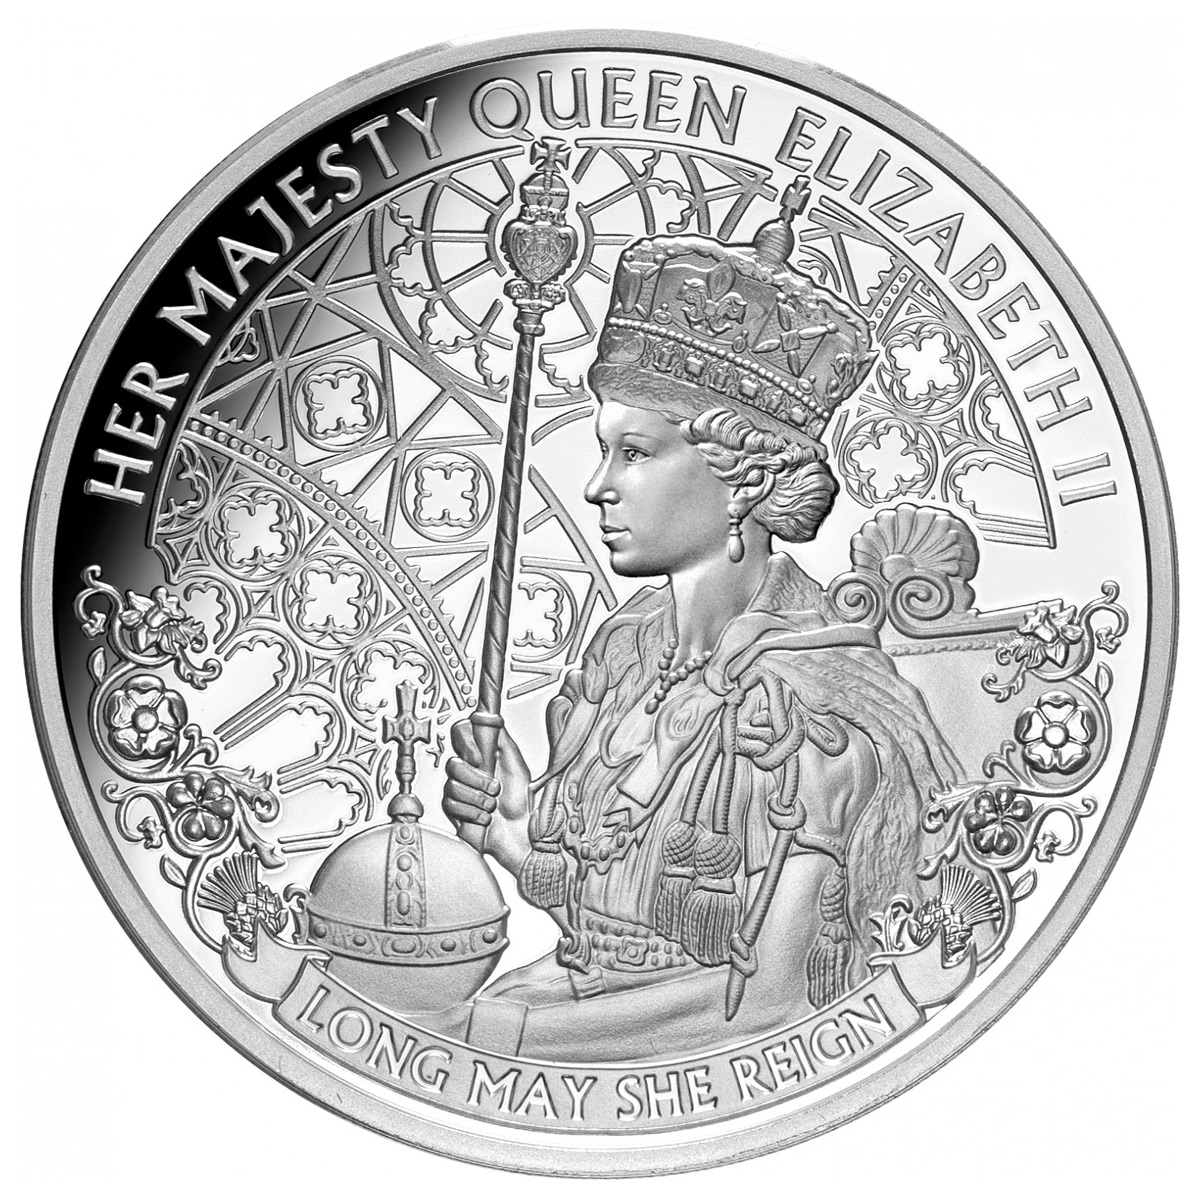 2020 Niue Queen Elizabeth II - Long May She Reign 1 oz Silver Proof $1 Coin GEM Proof OGP